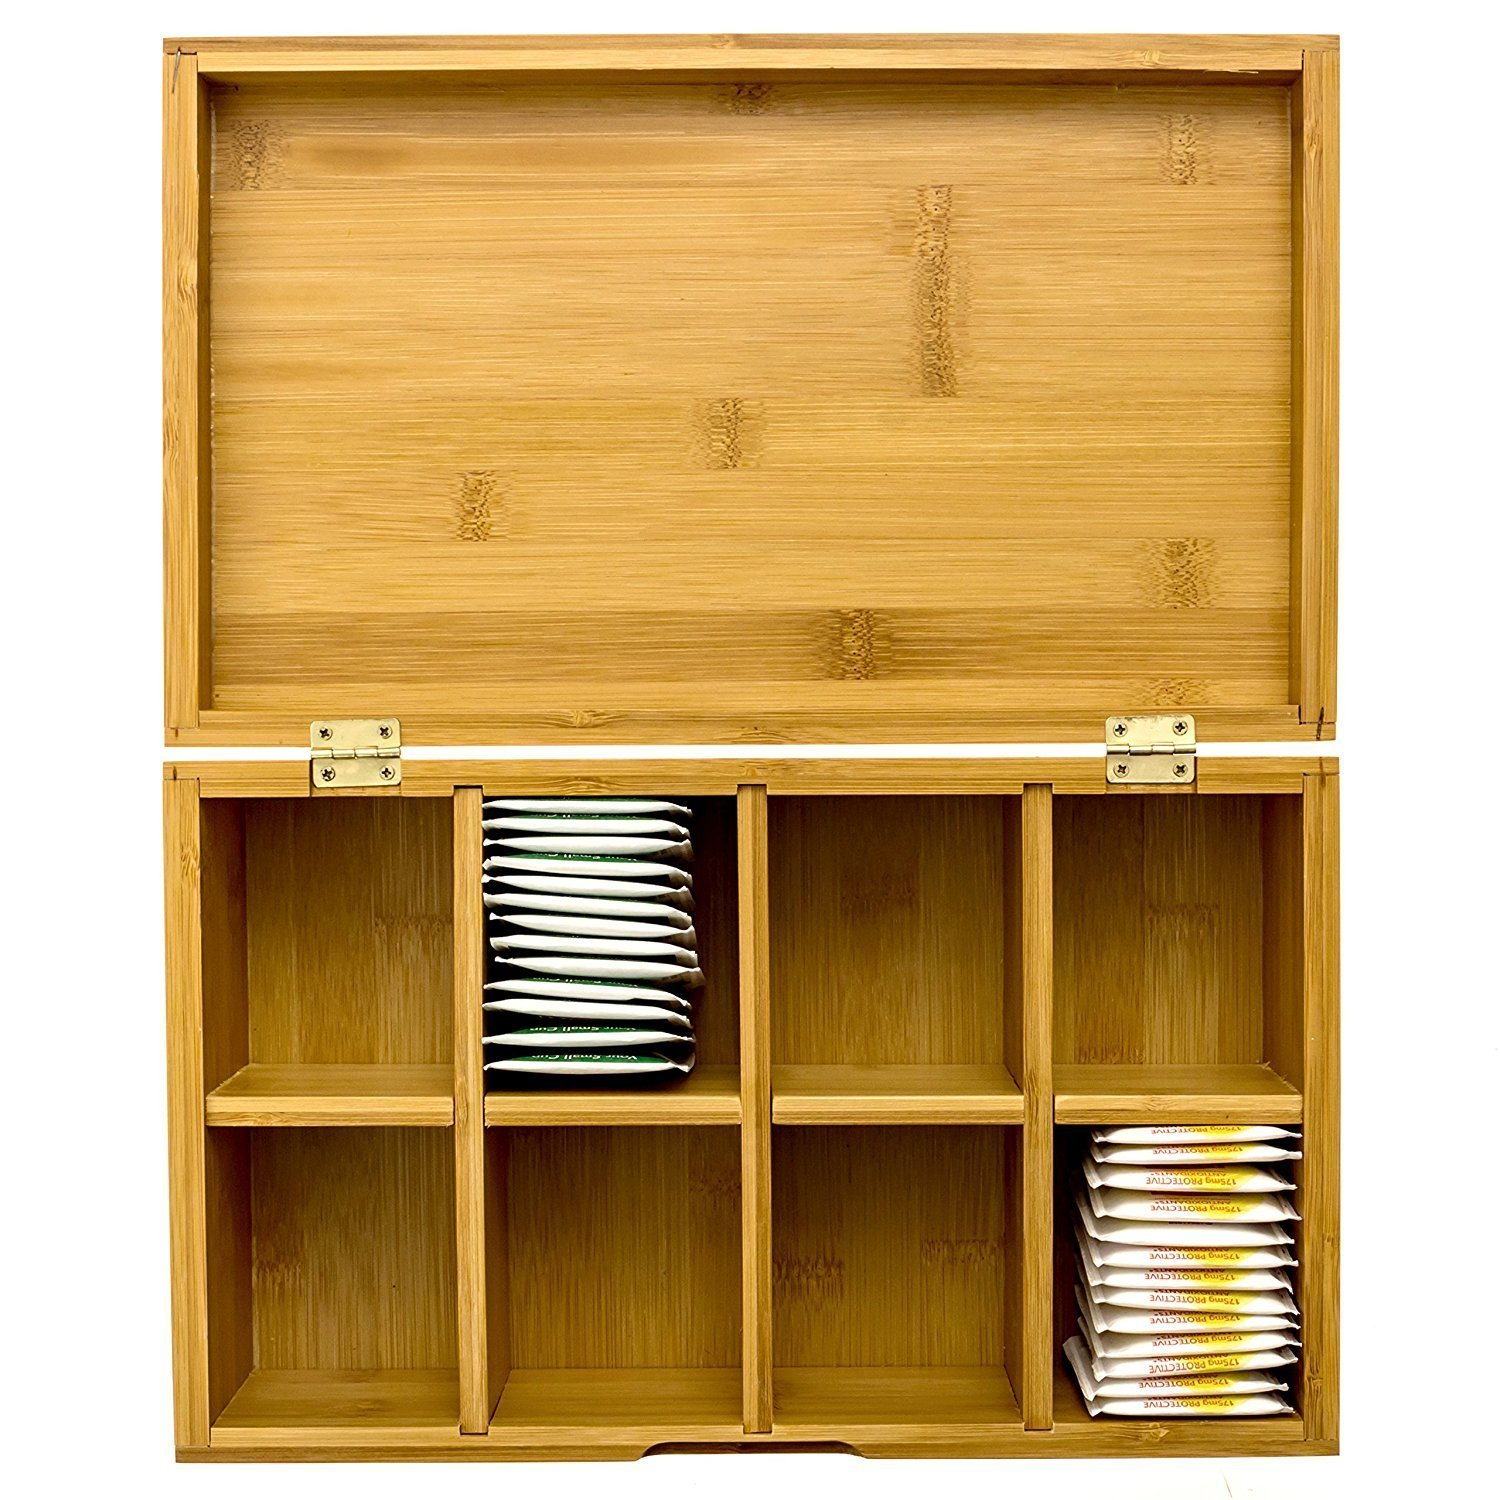 Intriom Bamboo Arts and Craft Storage,Sewing Storage, Tea Box, Jewelry Box, Organizer, With Lid Cover 8 Compartment Multipurpose Storage